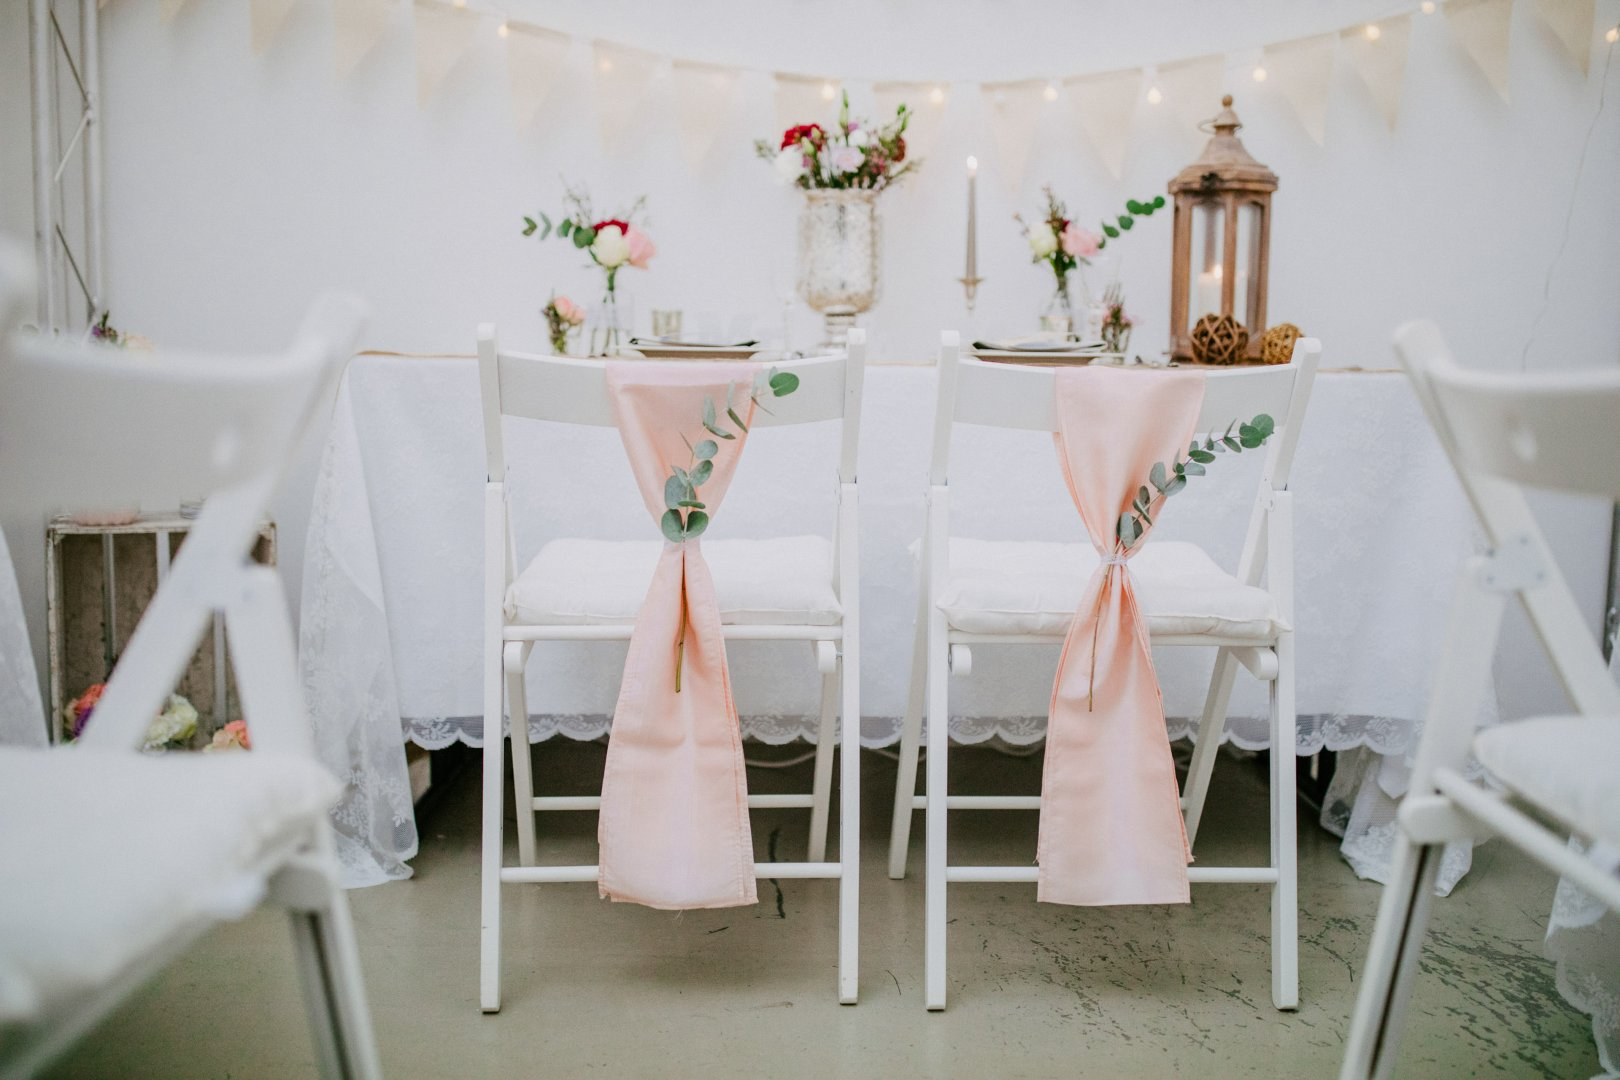 White Pink Table Chair Furniture Room Tablecloth Chiavari chair Textile Linens Interior design Decoration Event Ceremony Flower Party Floral design Dining room Petal Wedding reception Centrepiece